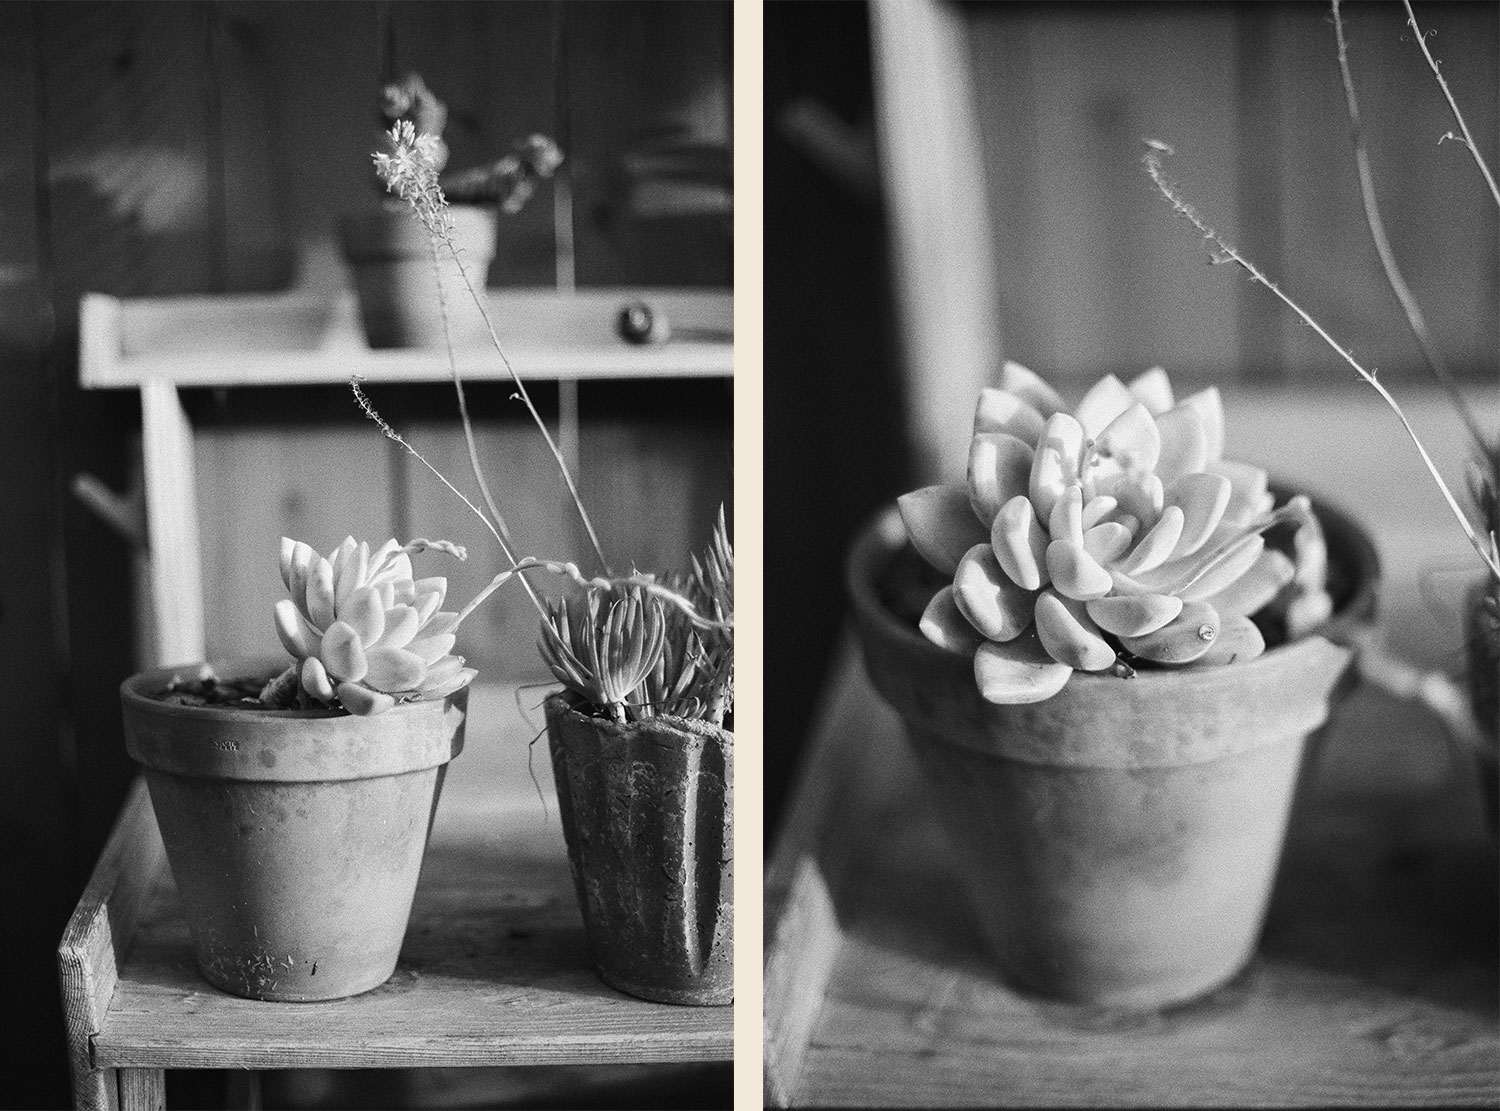 Example photos using Kodak T-Max P3200 film